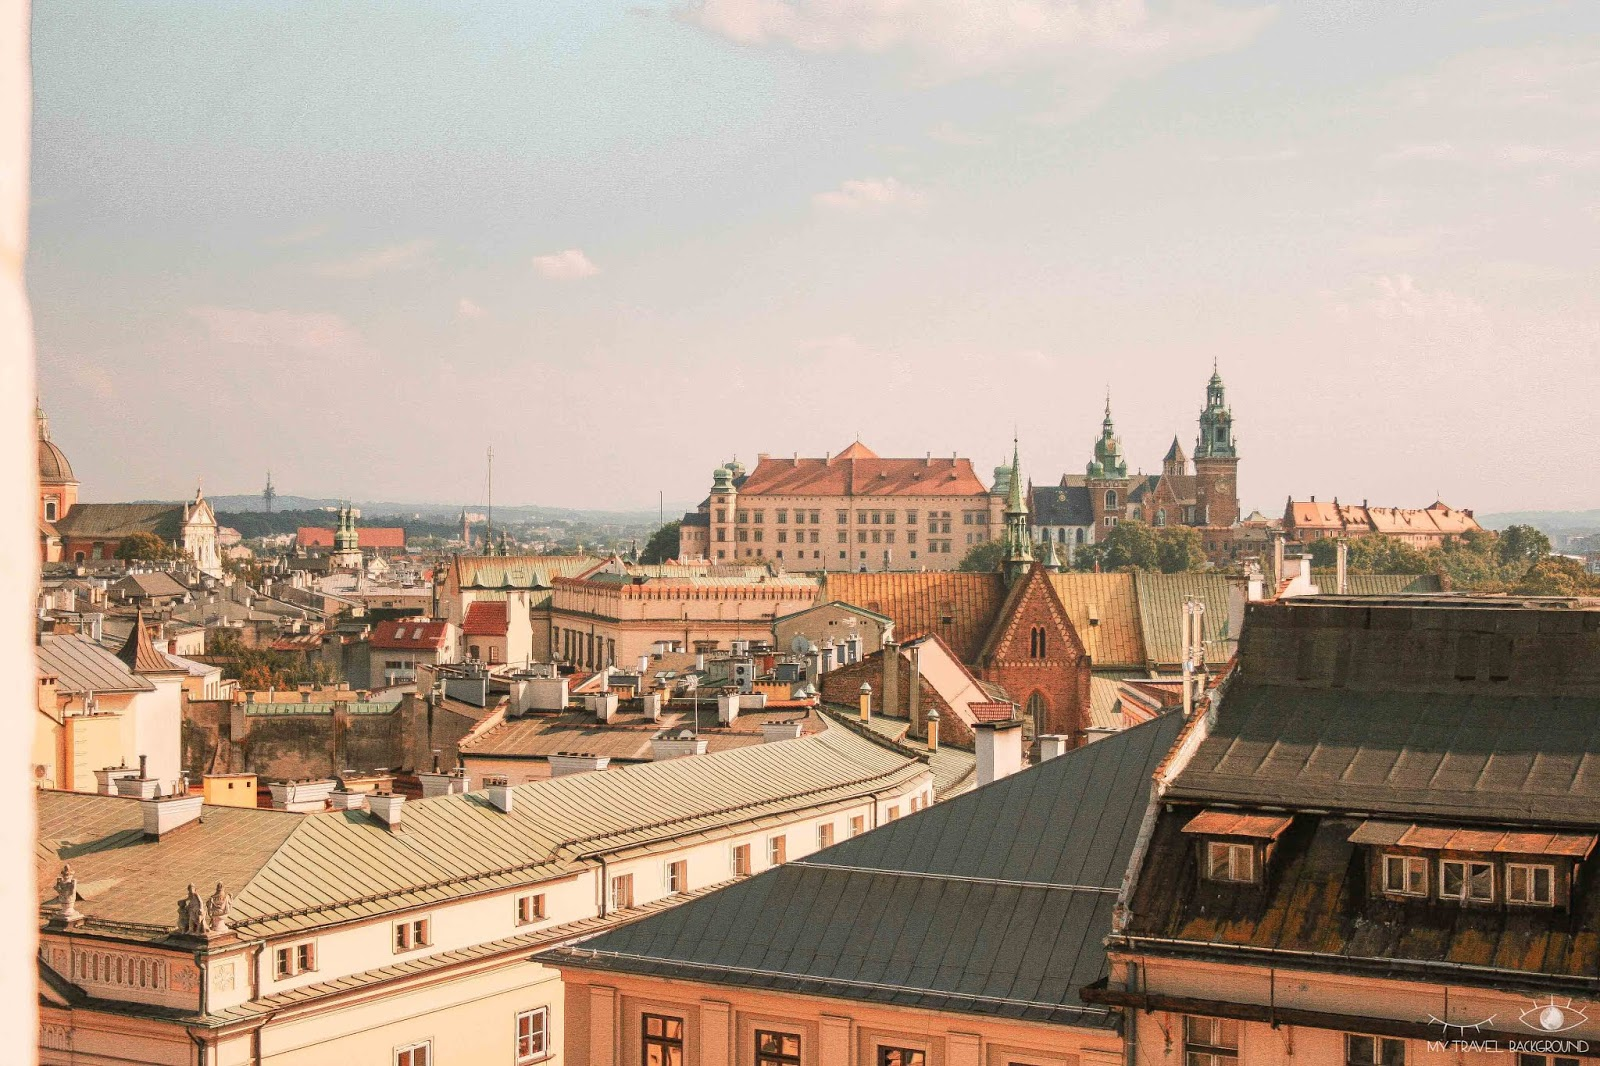 My Travel Background : Cracovie en Pologne, mon top 10 pour visiter la ville - Château du Wawel